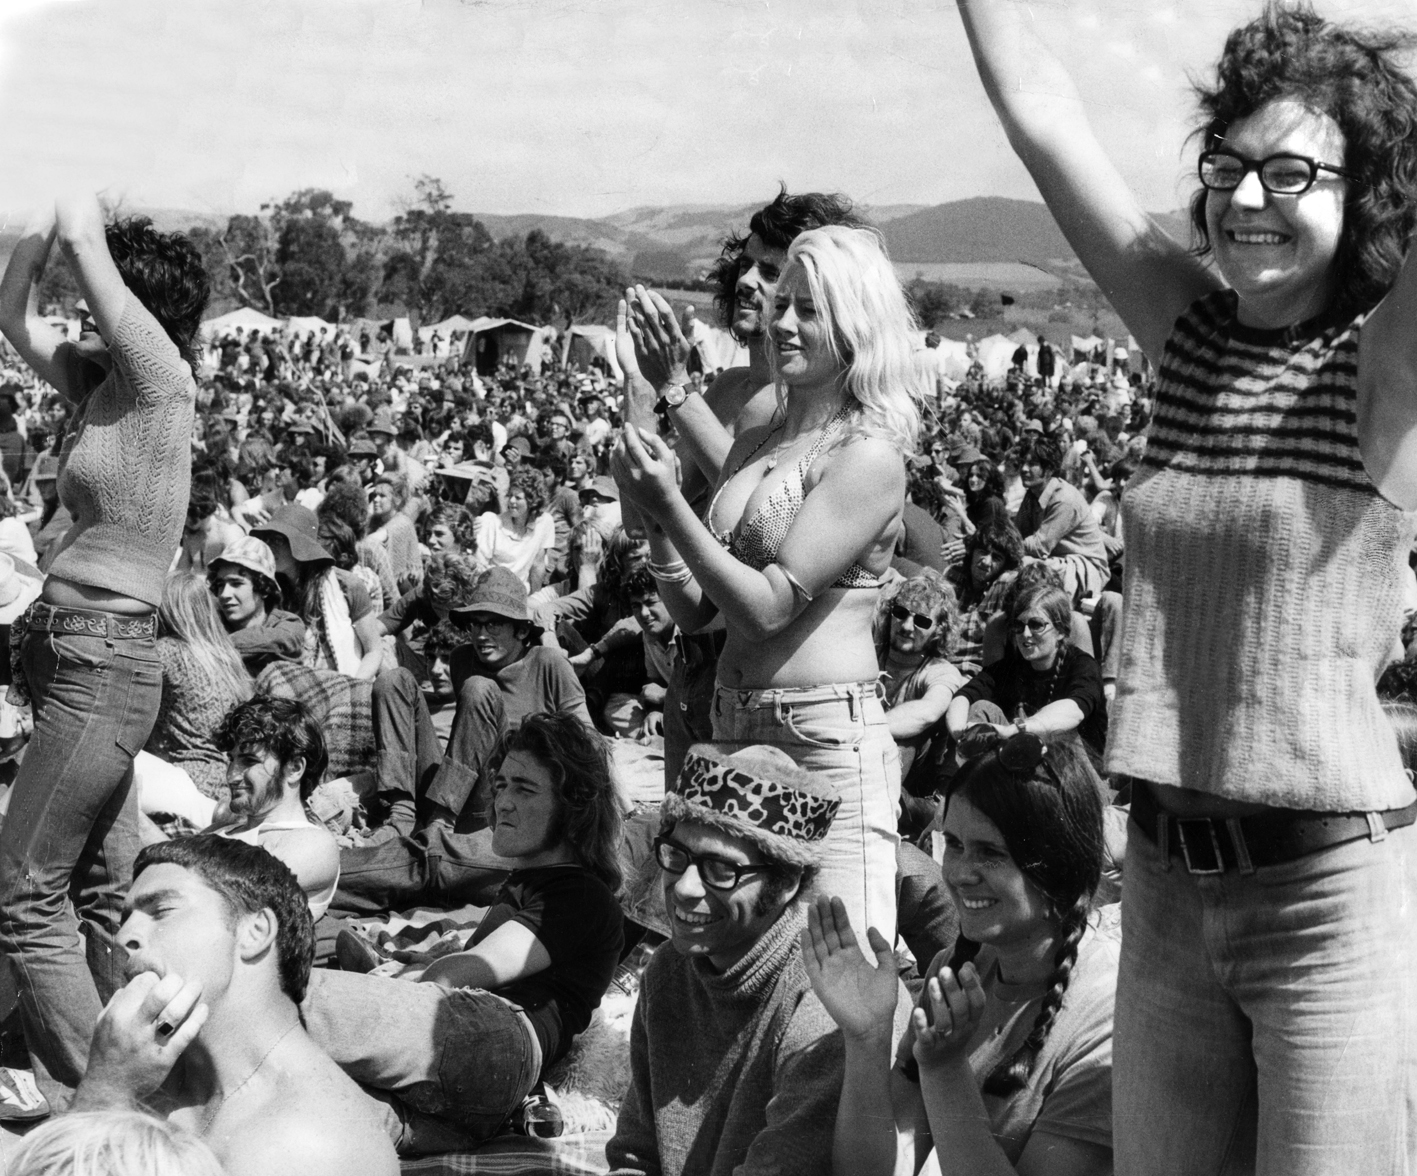 woodstock 1969 essay This page is dedicated to the original woodstock 1969 playlist of bands the woodstock lineup is one of the most use writingbladenet for free essay writing.